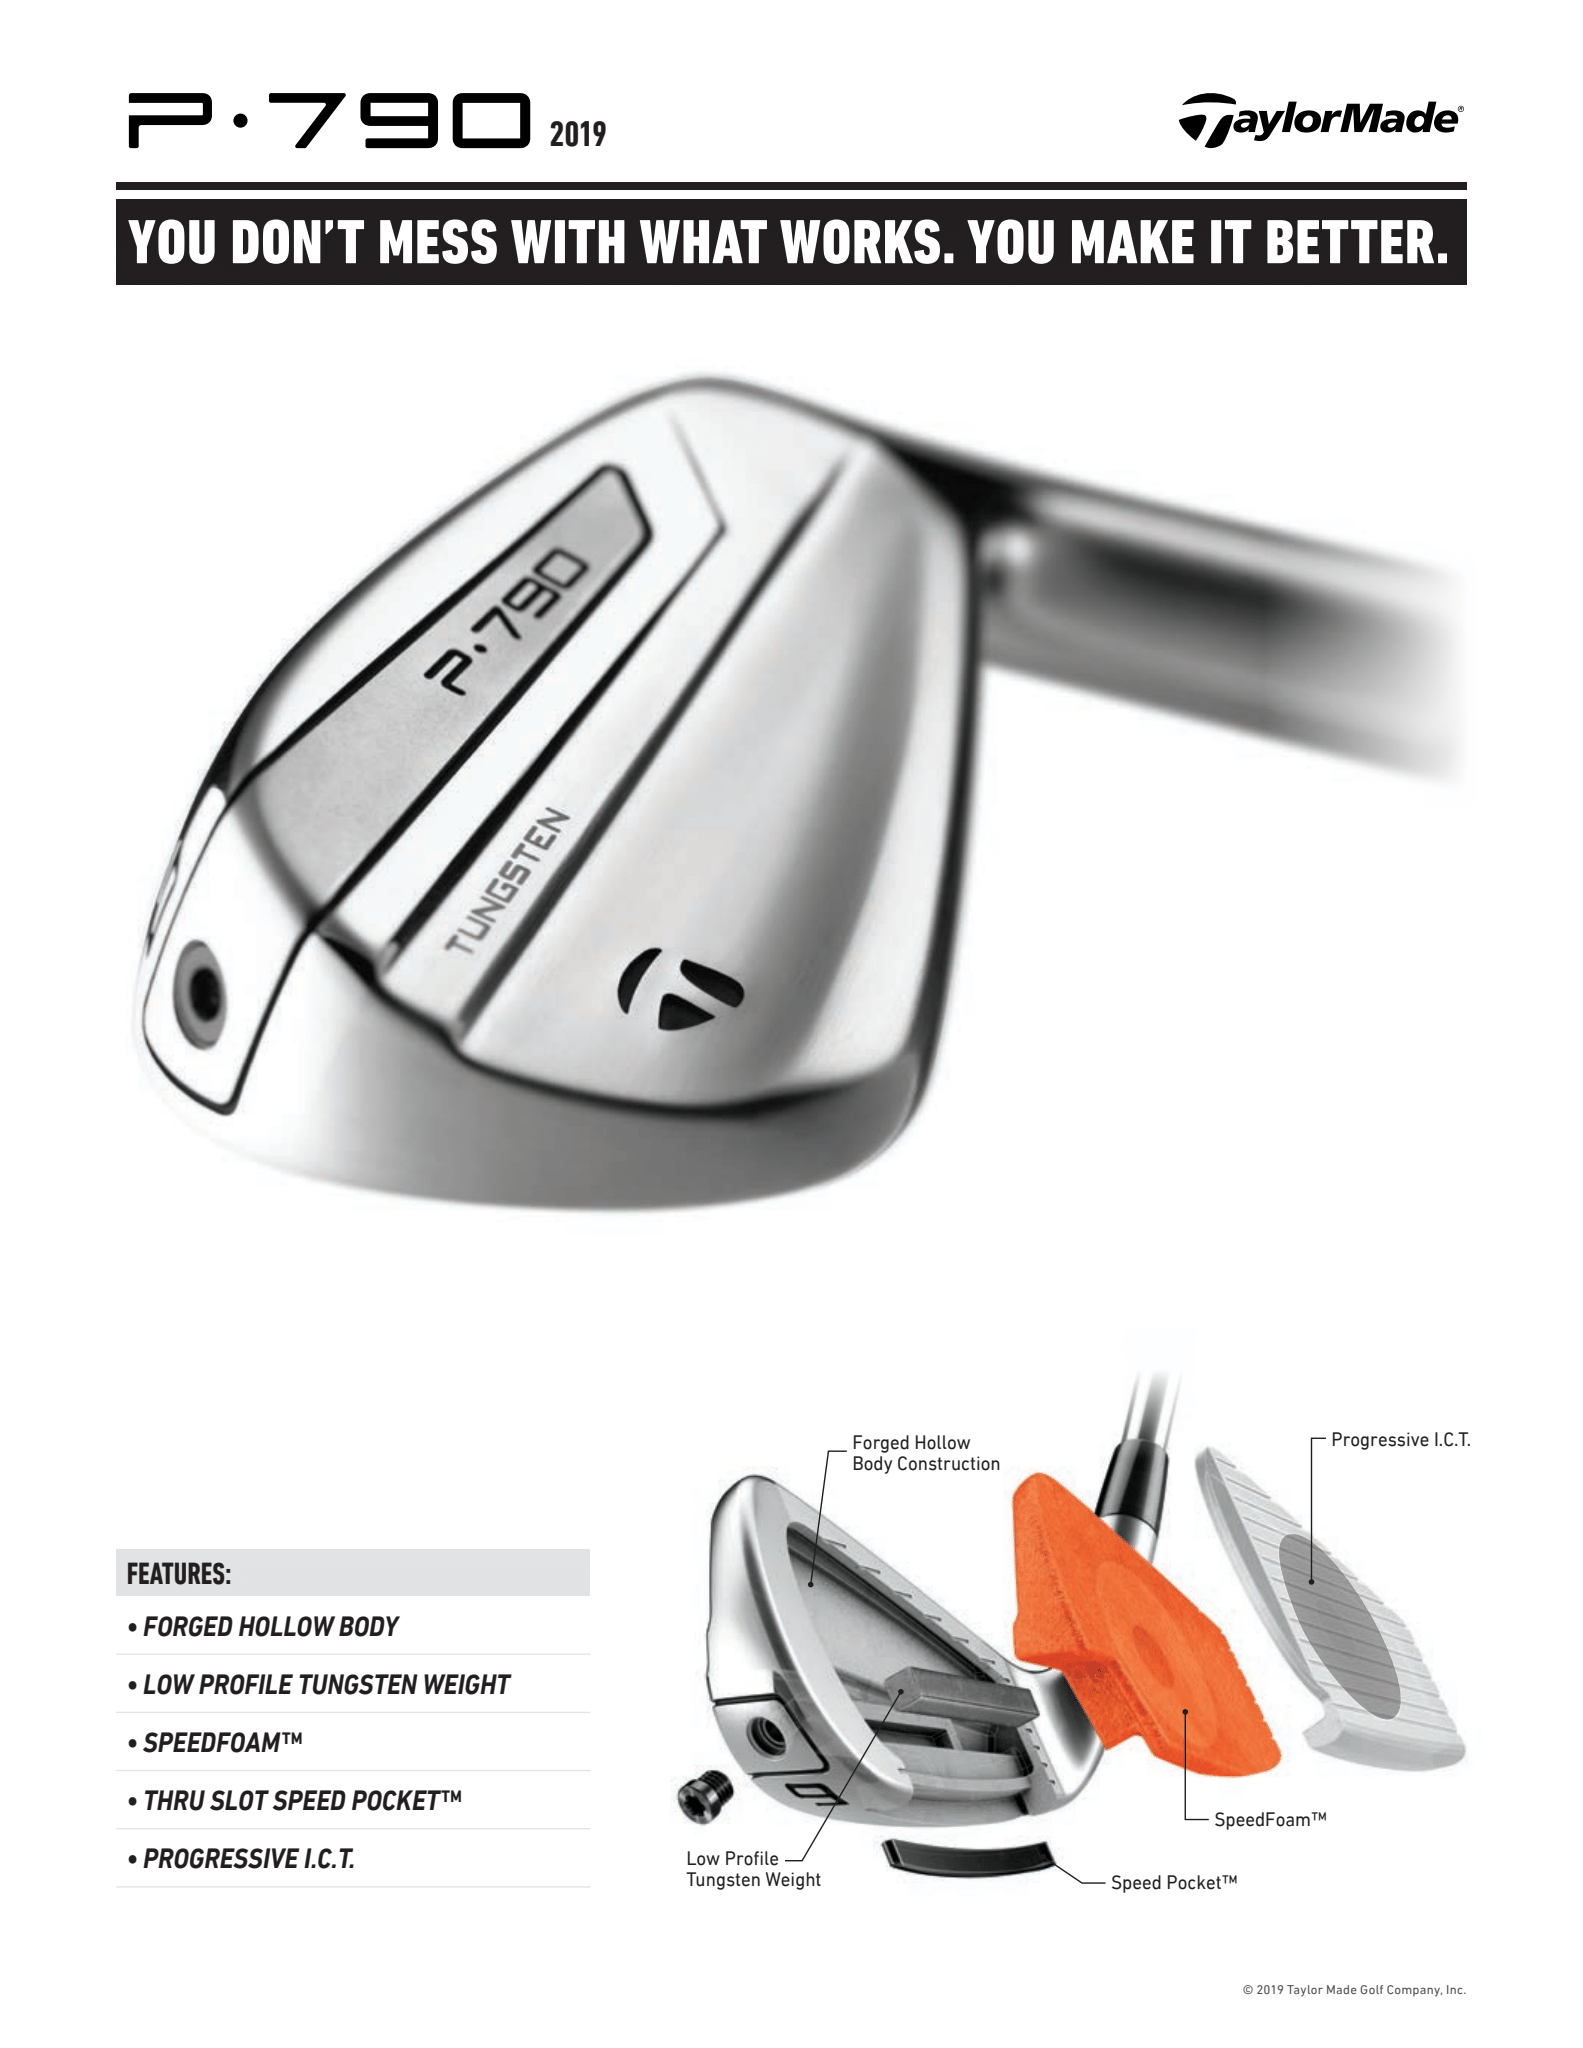 Features of a Taylormade P790 Iron